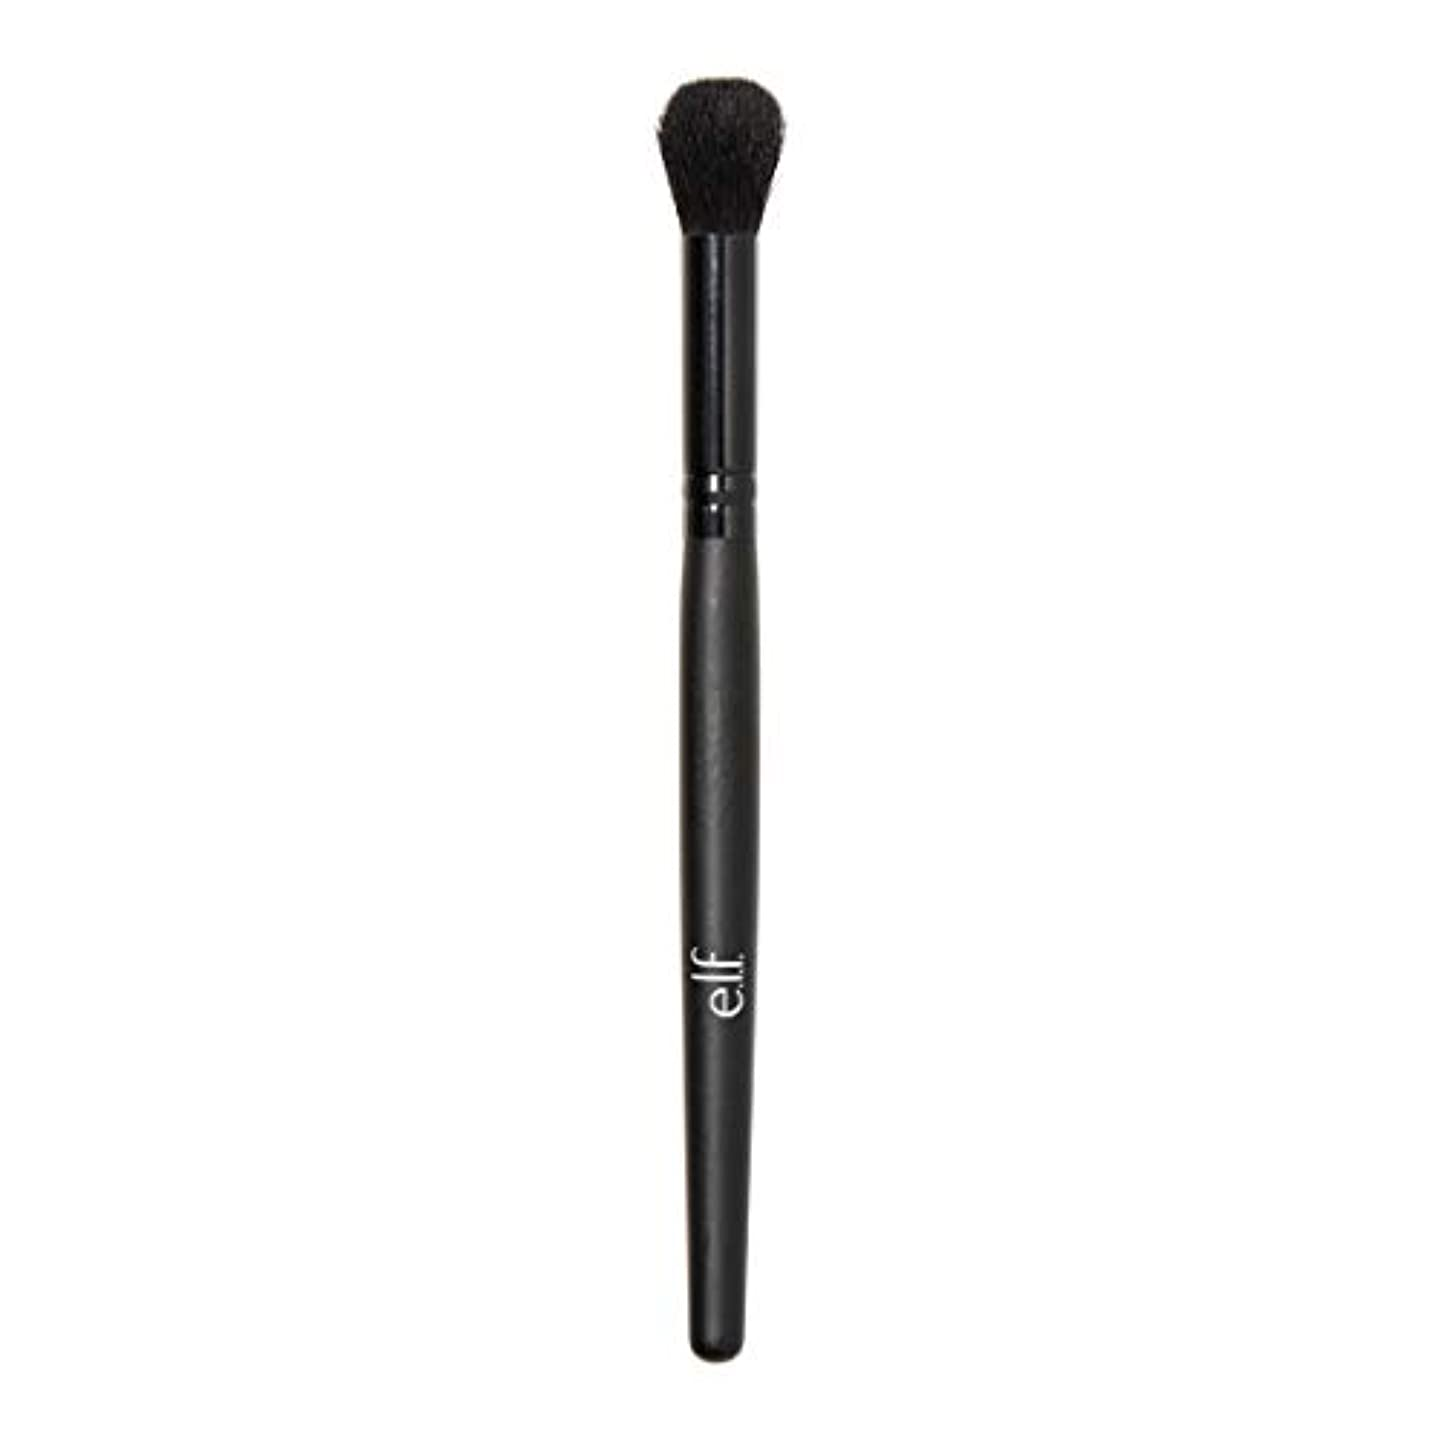 知的実質的に否認するe.l.f. Studio Flawless Concealer Brush Flawless Concealer Brush (並行輸入品)